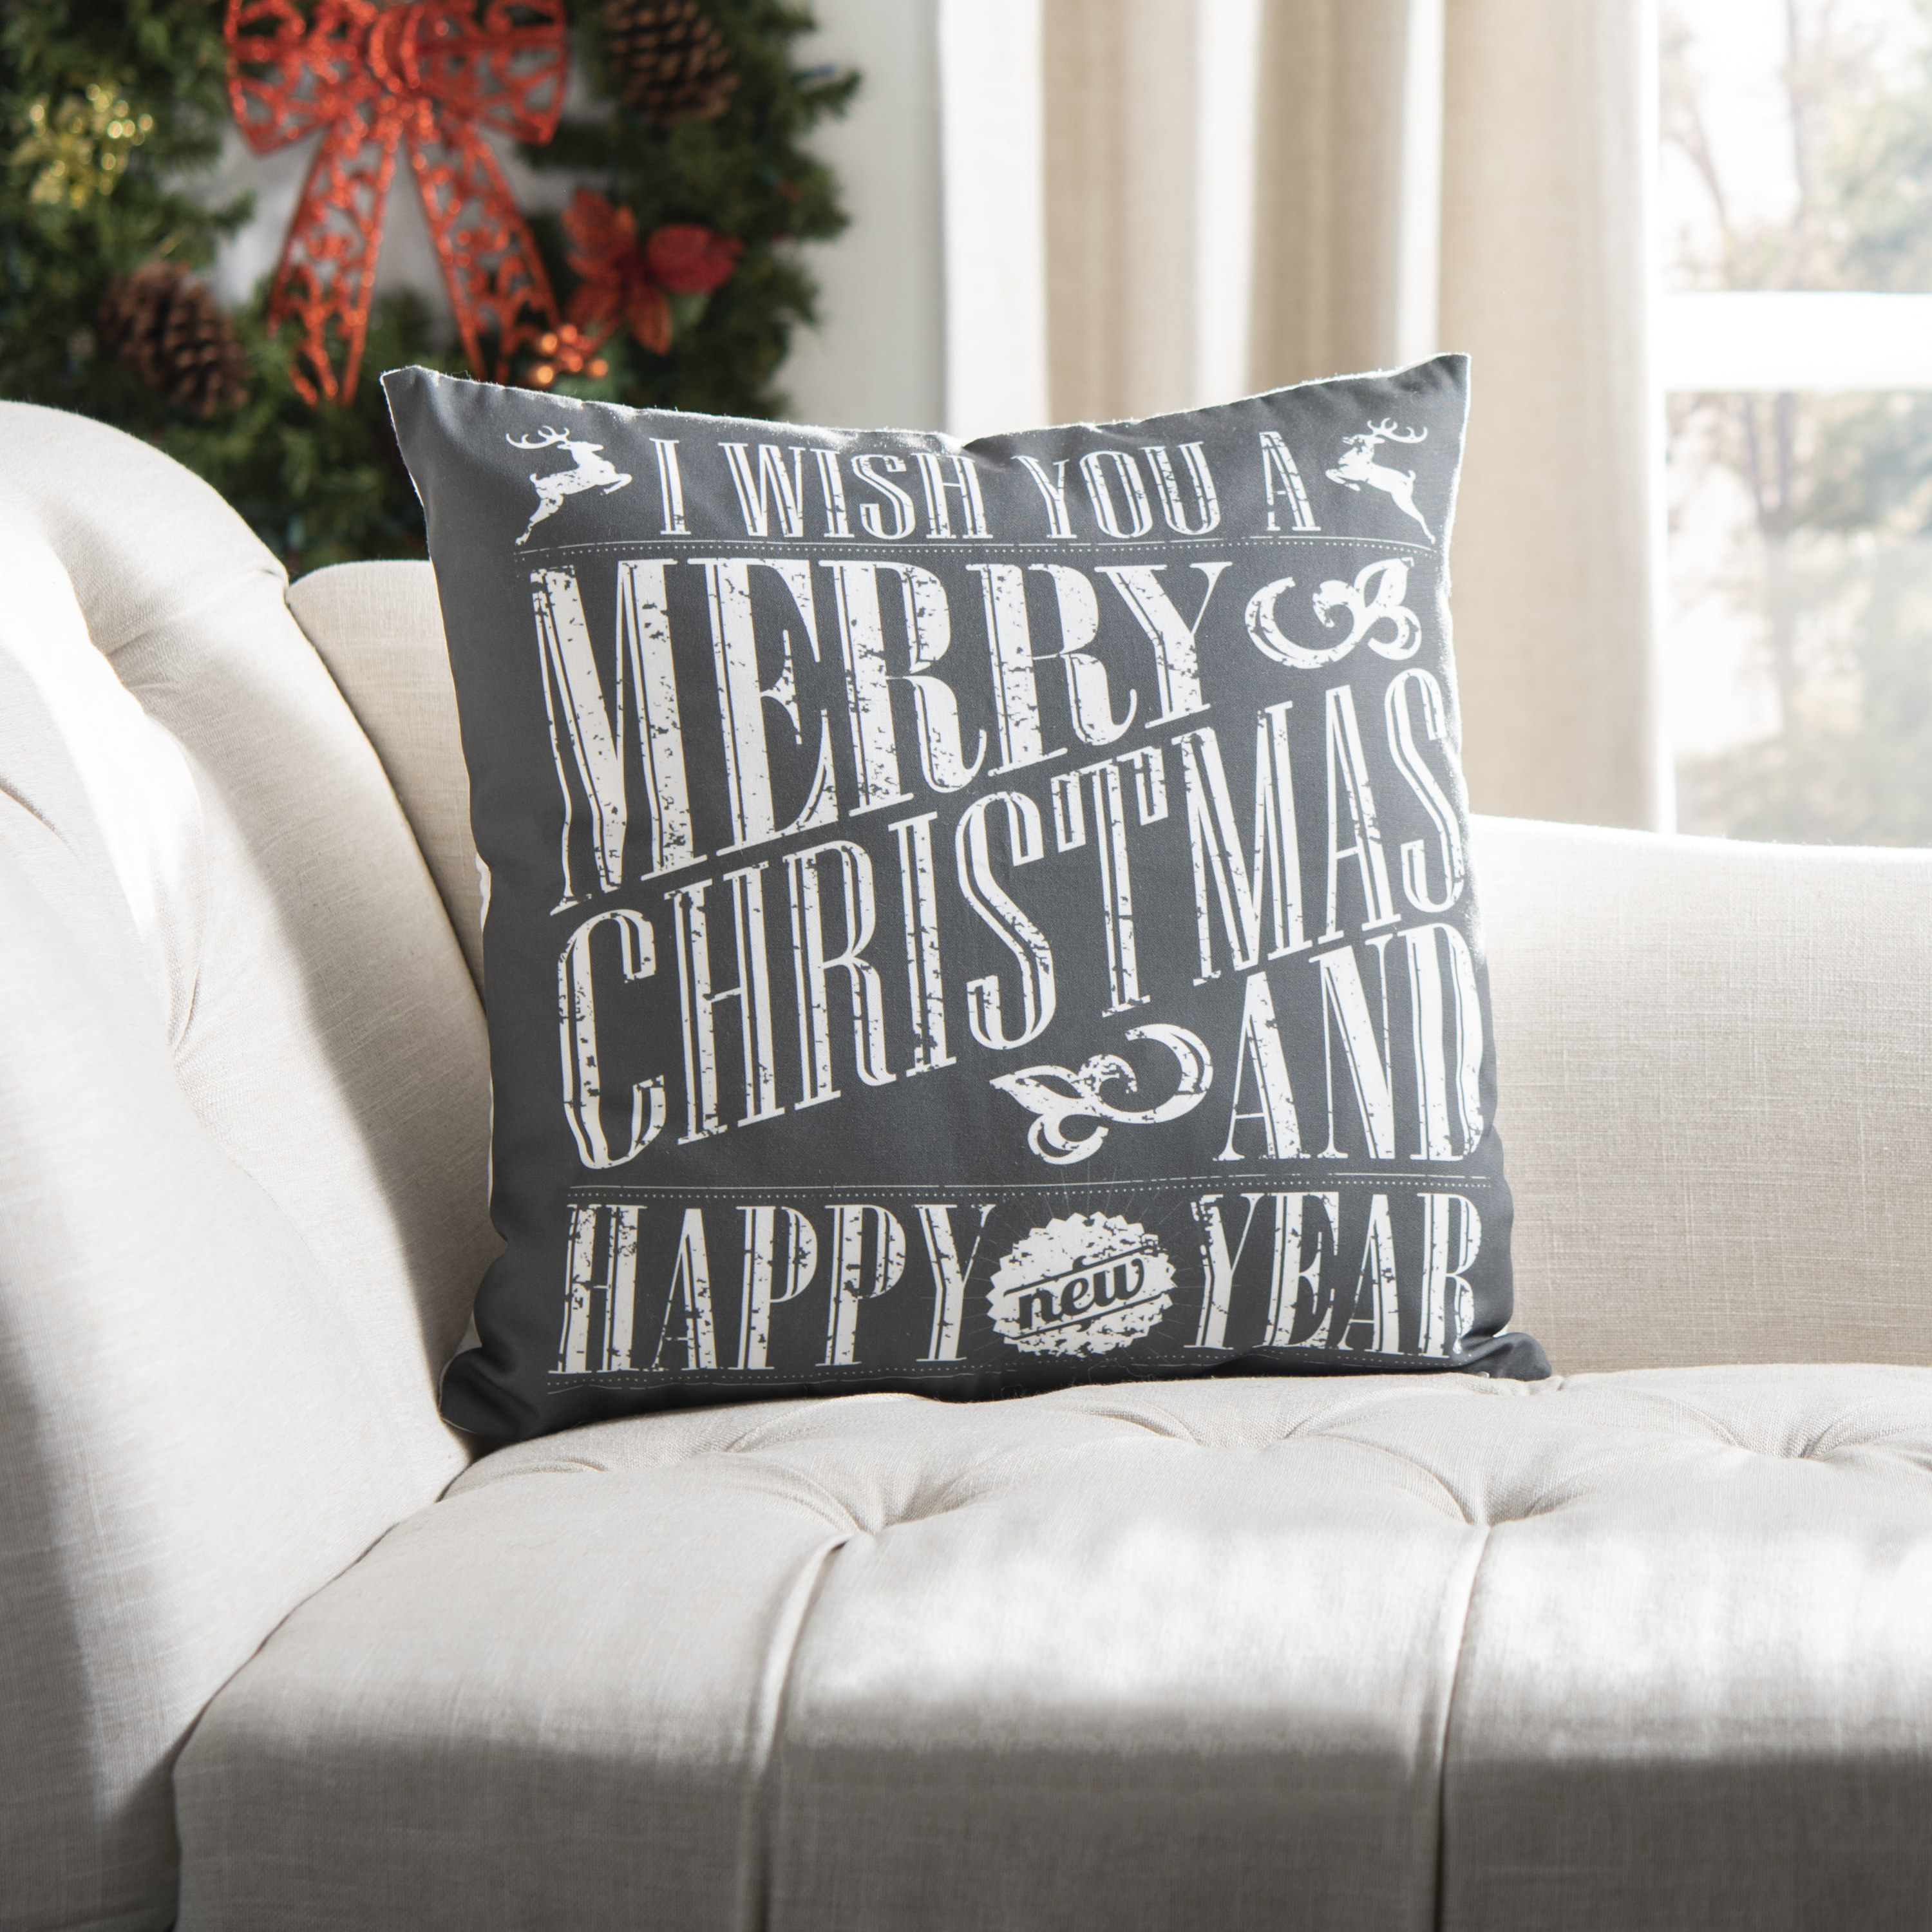 The holiday pillow on a couch